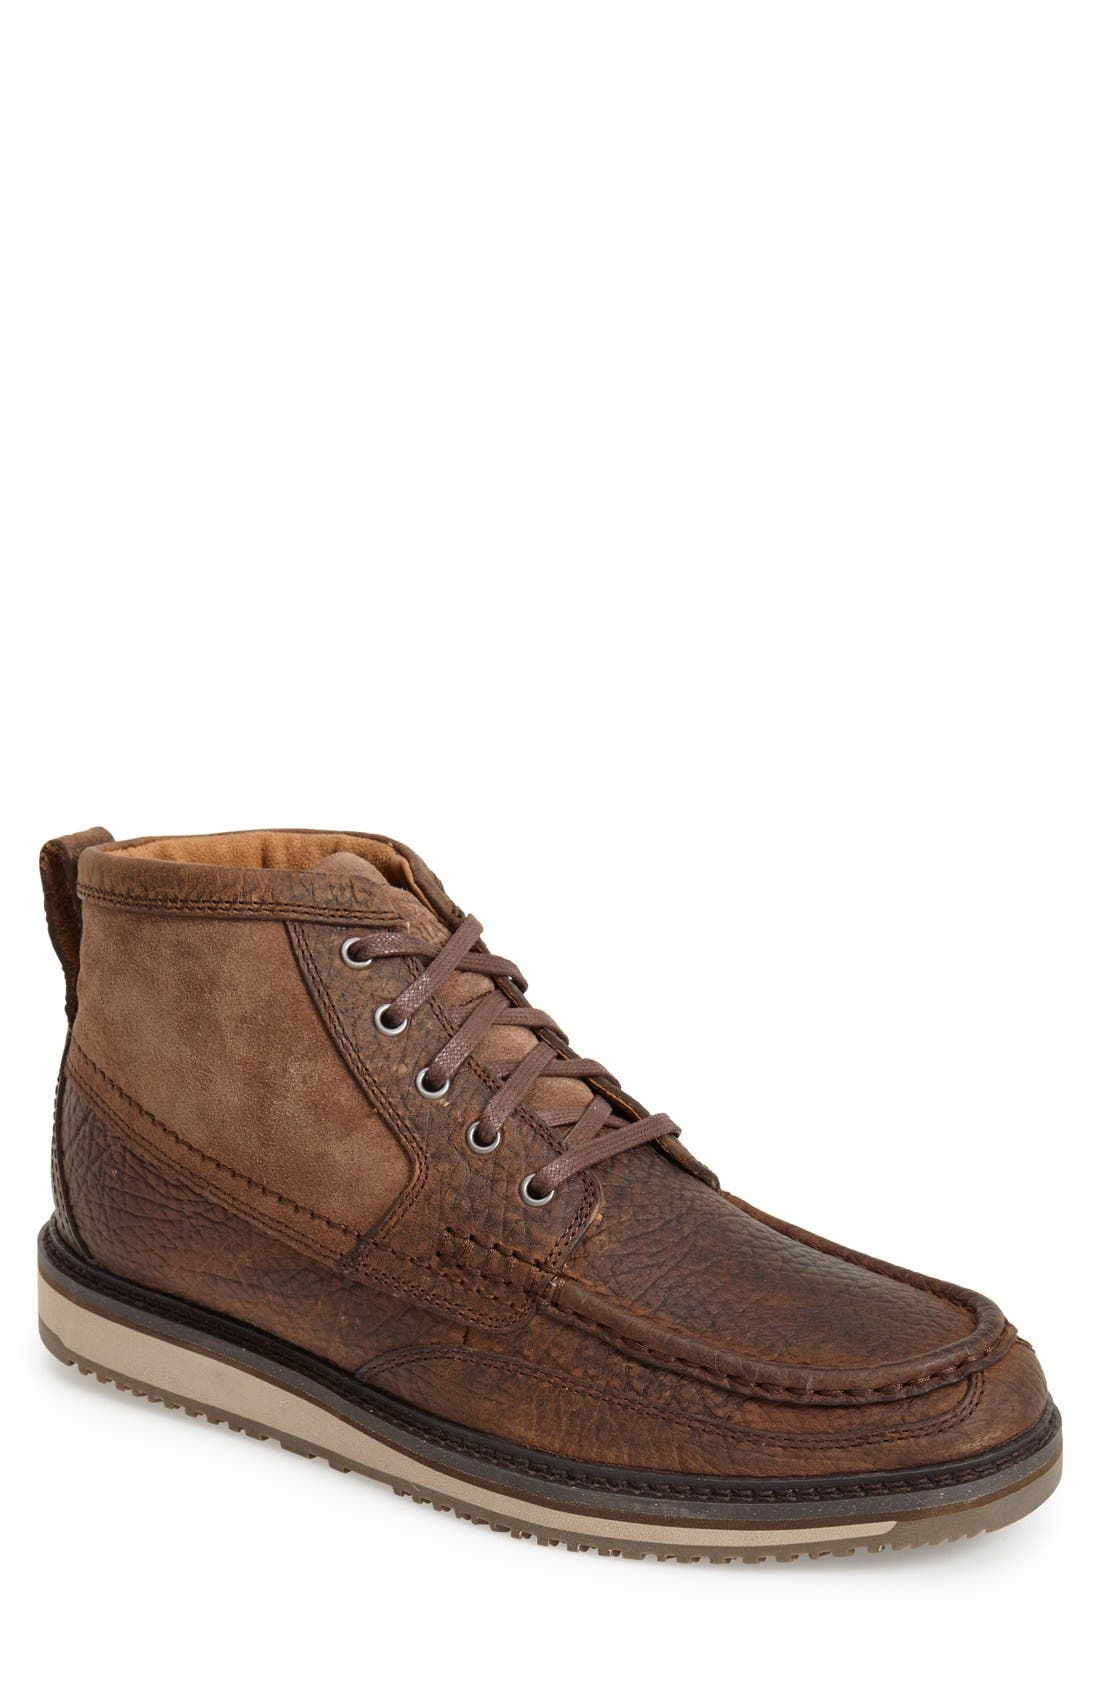 'Lookout' Moc Toe Boot,                         Main,                         color, Brown